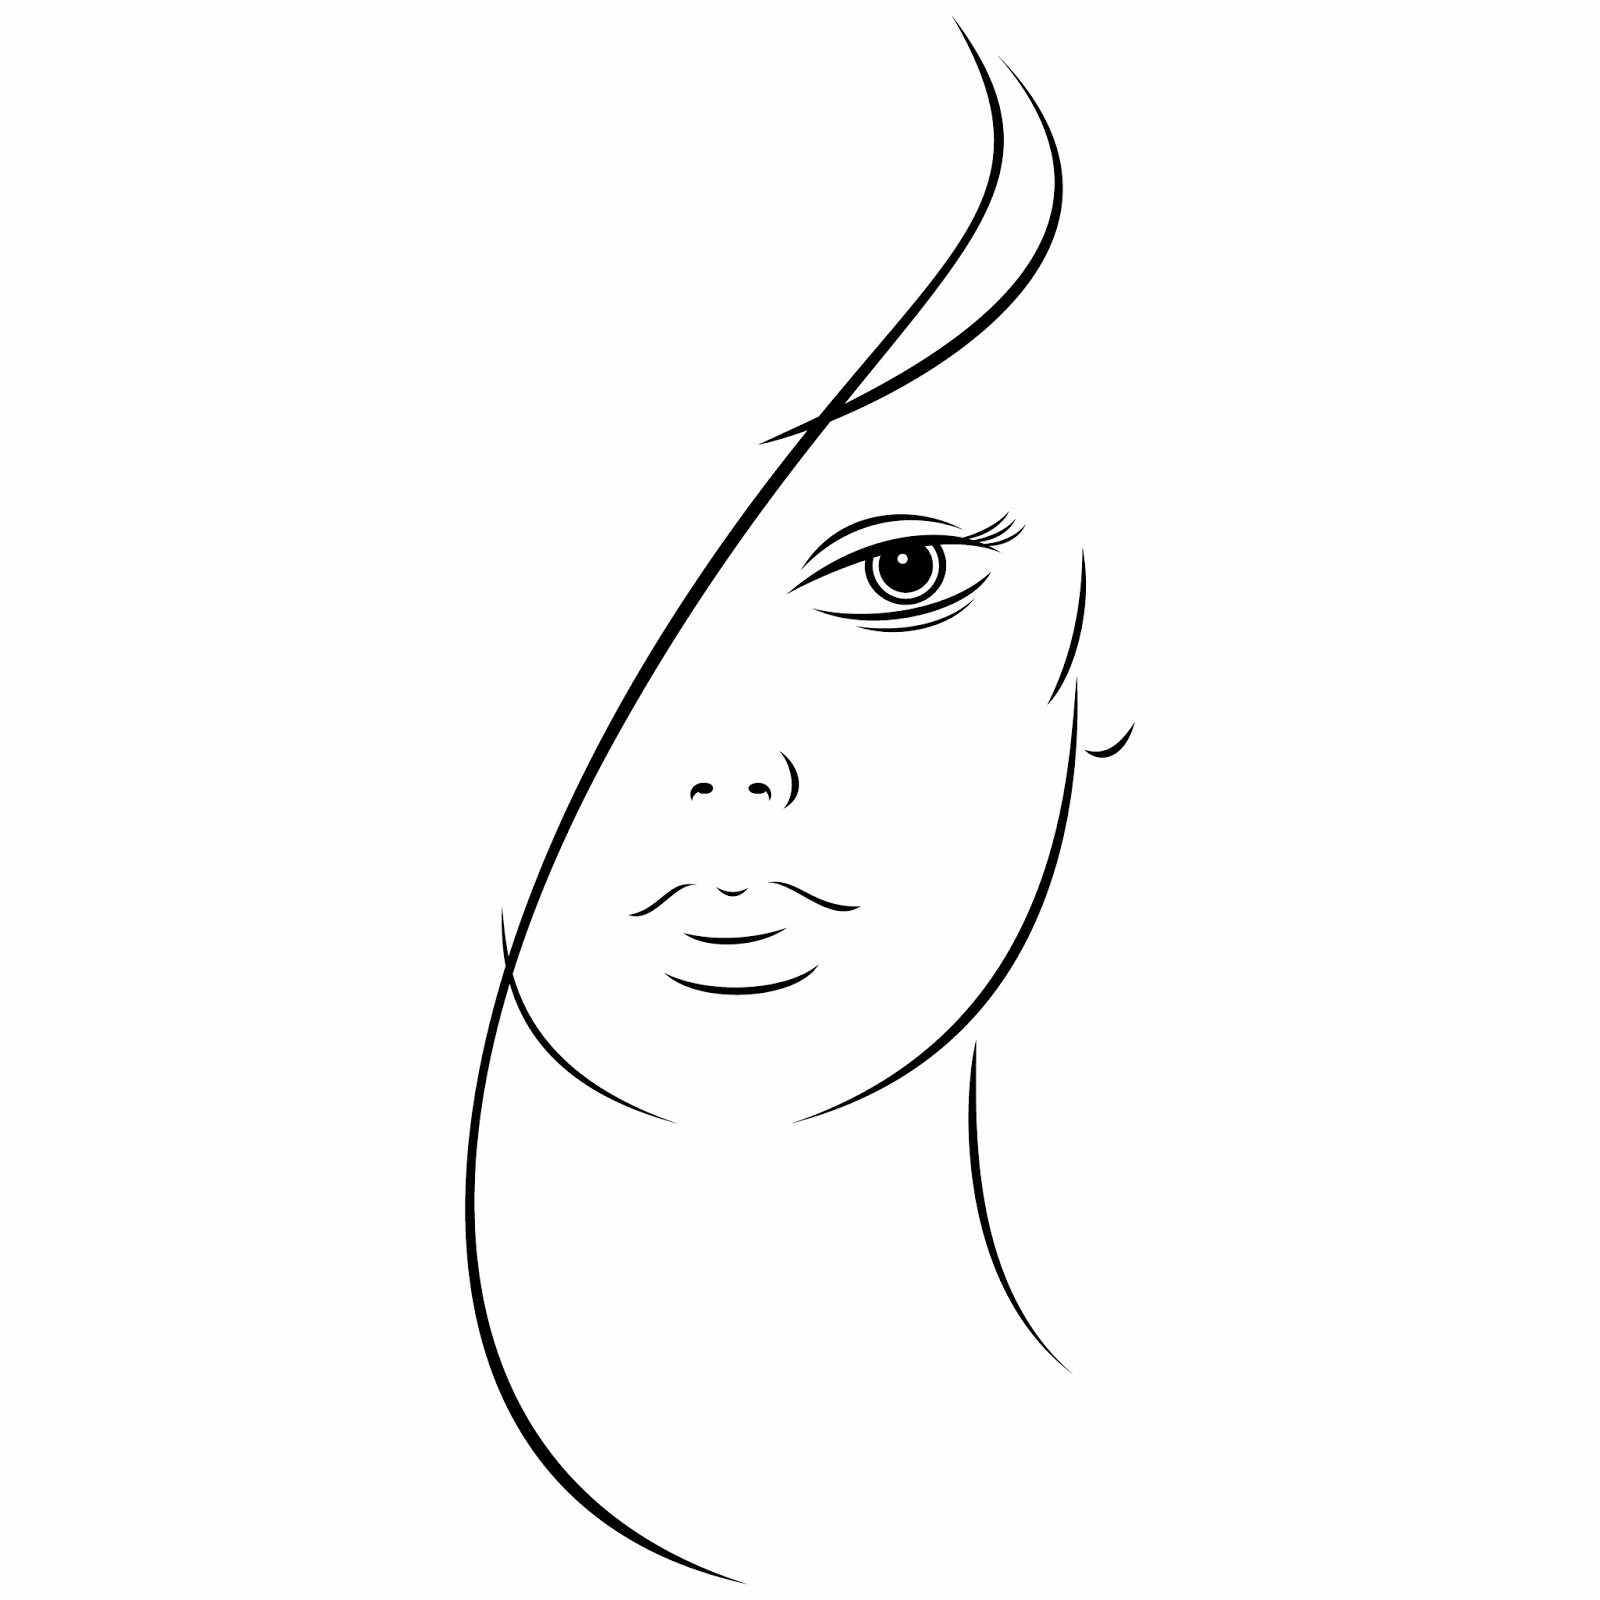 Download FREE EPS Design Graphic Art Vector Illustration: Ink sketch of beautiful young woman face on white background. Vector illustration clip-art design element save in 8 eps